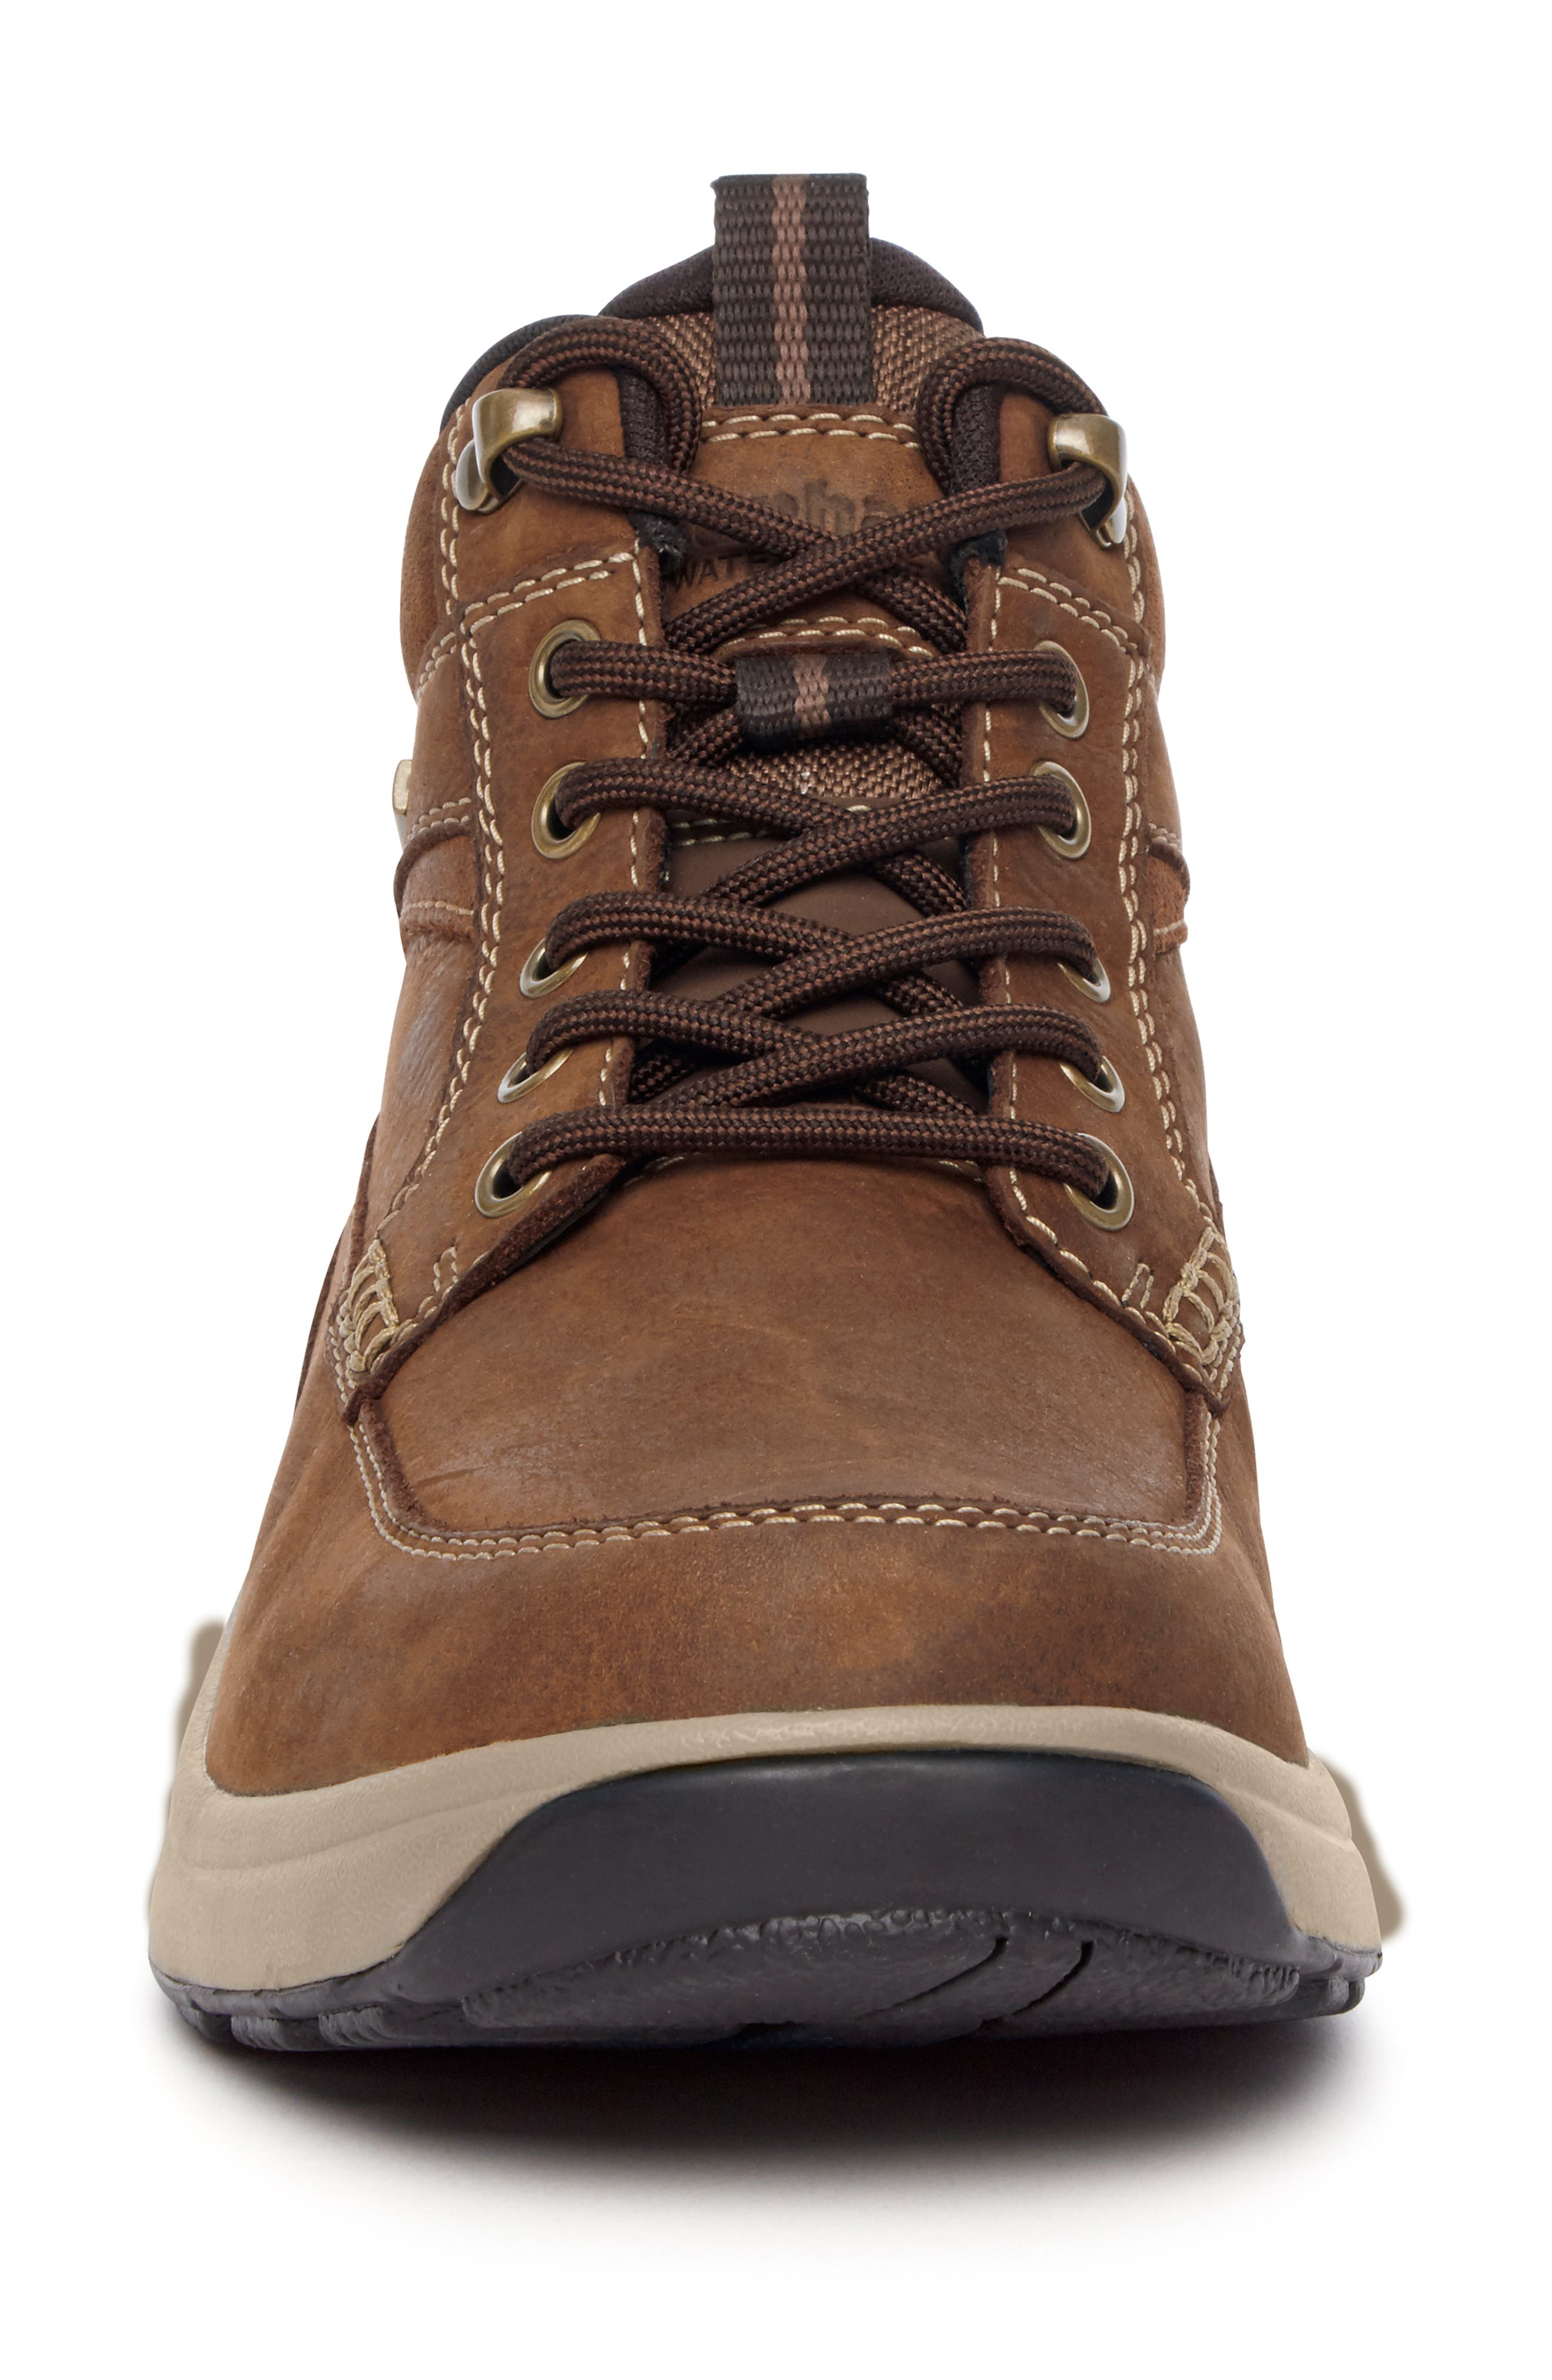 8000 Midland Waterproof Work Boot,                             Alternate thumbnail 4, color,                             TAN LEATHER